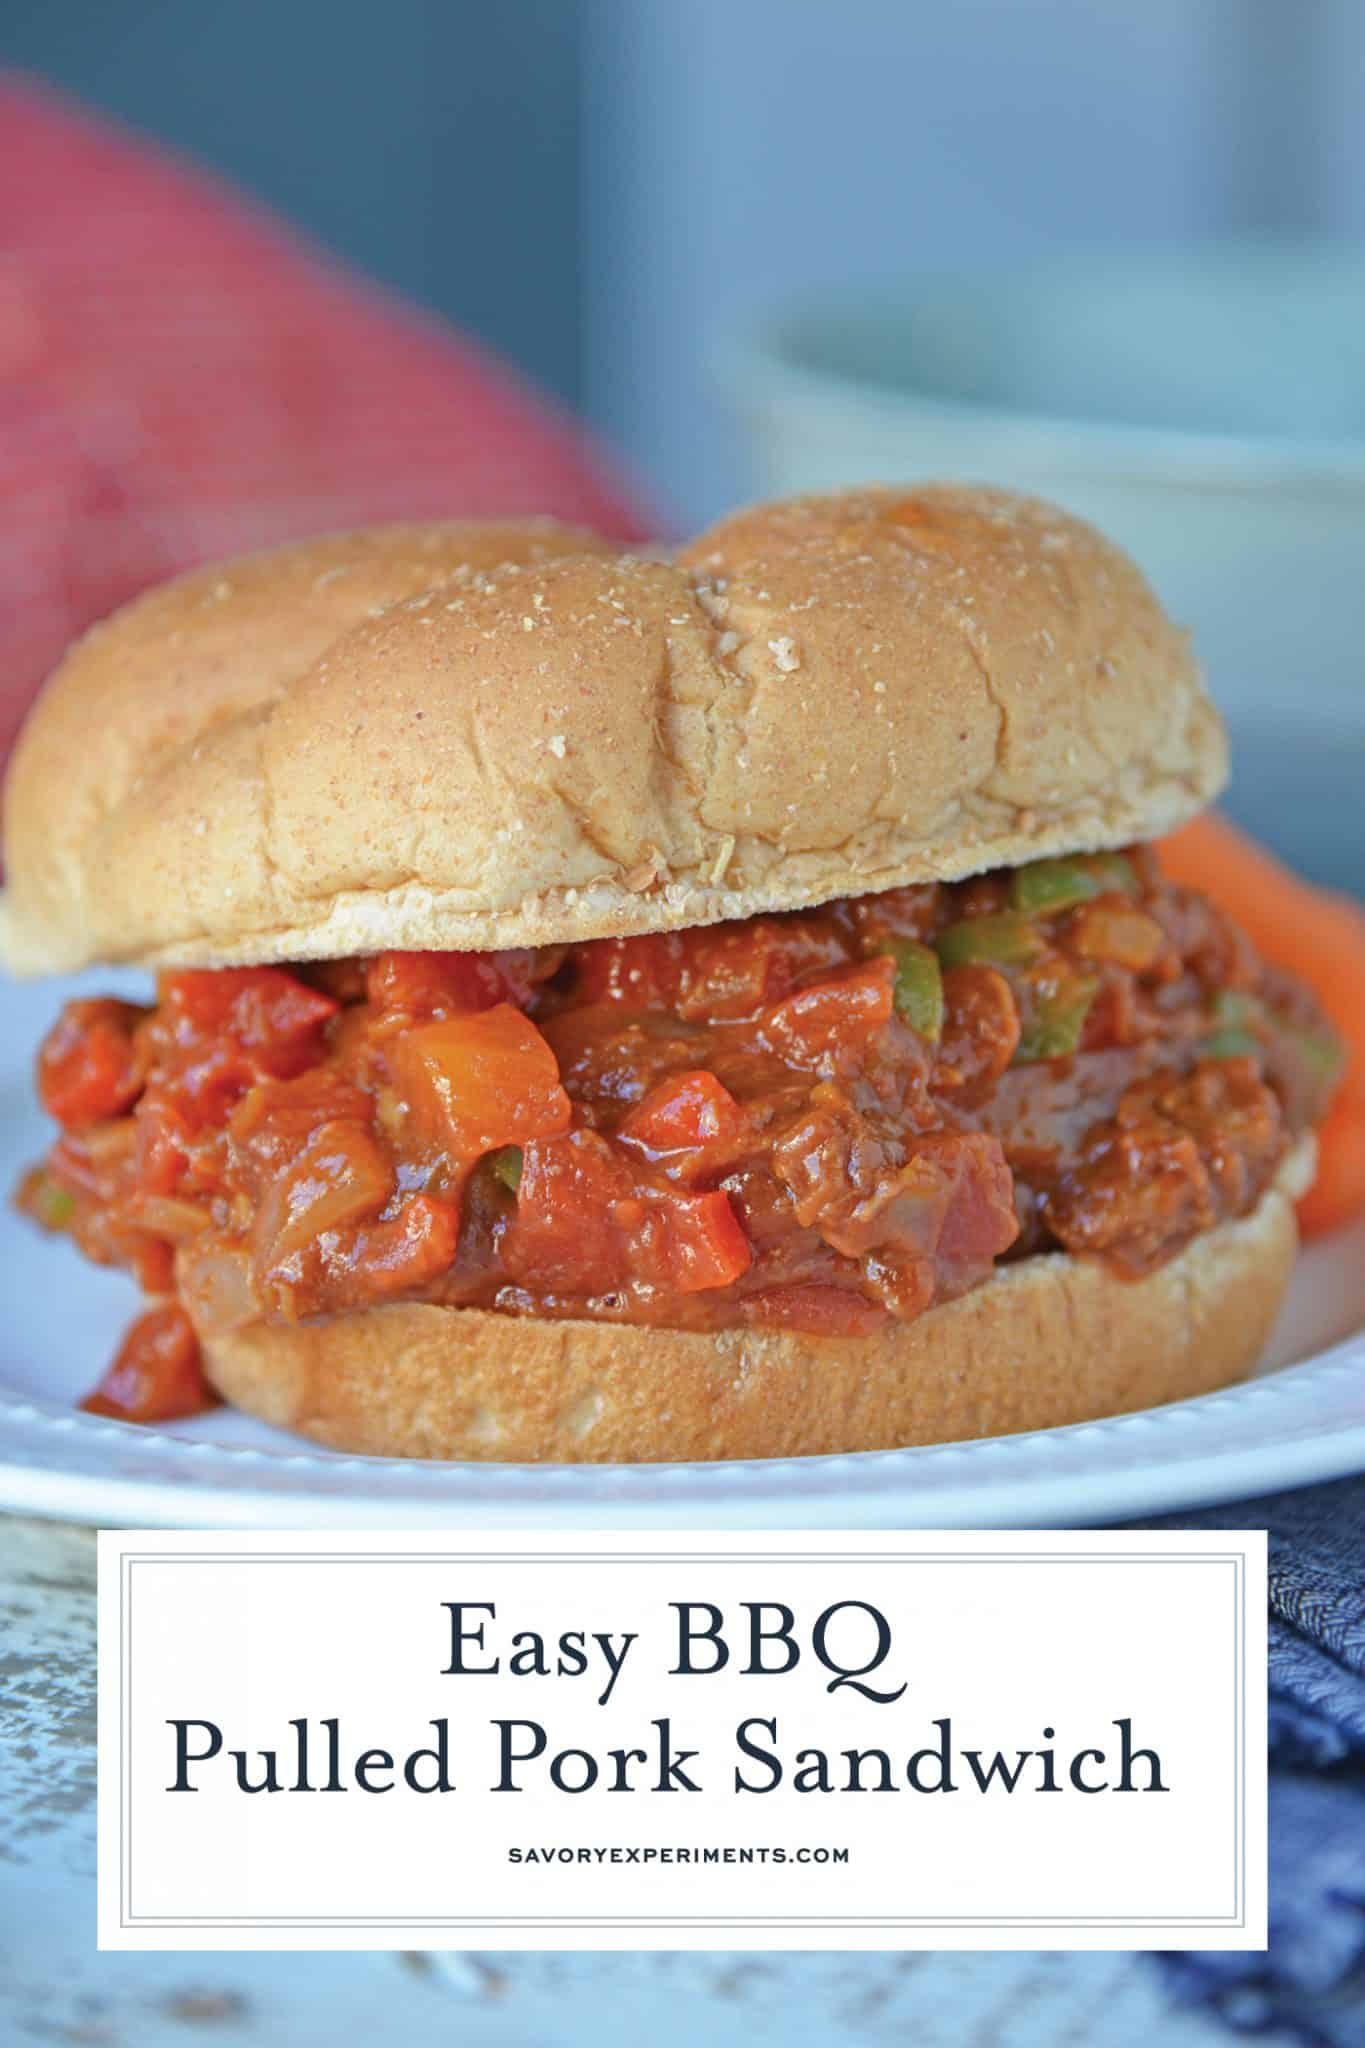 This semi-homemade Pulled Pork Sandwich is a quick and easy kid friendly option! It's an easy pulled pork recipe that will be ready in just 15 minutes! #pulledporksandwich #semihomemade #easypulledporkrecipe www.savoryexperiments.com